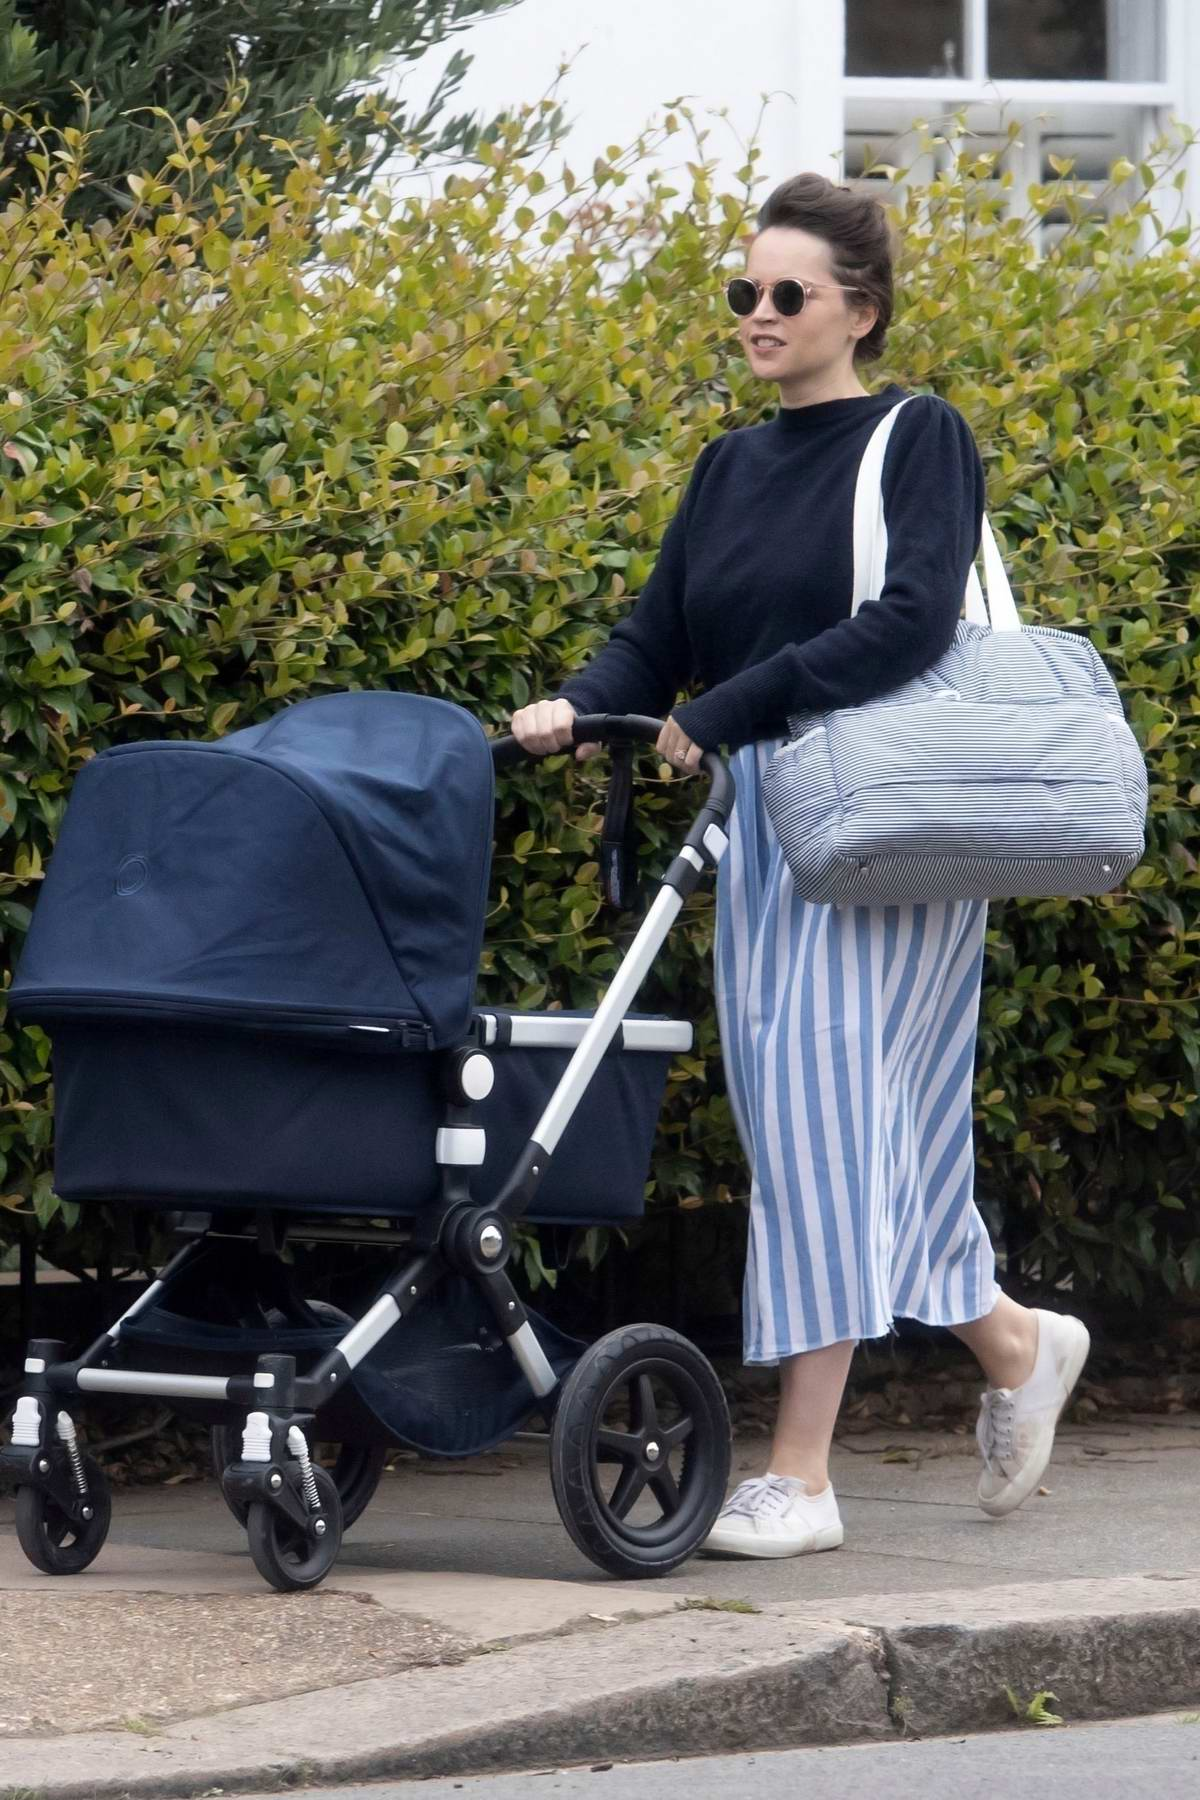 Felicity Jones seen for the first time since giving birth as she takes her newborn for a stroll in London, UK